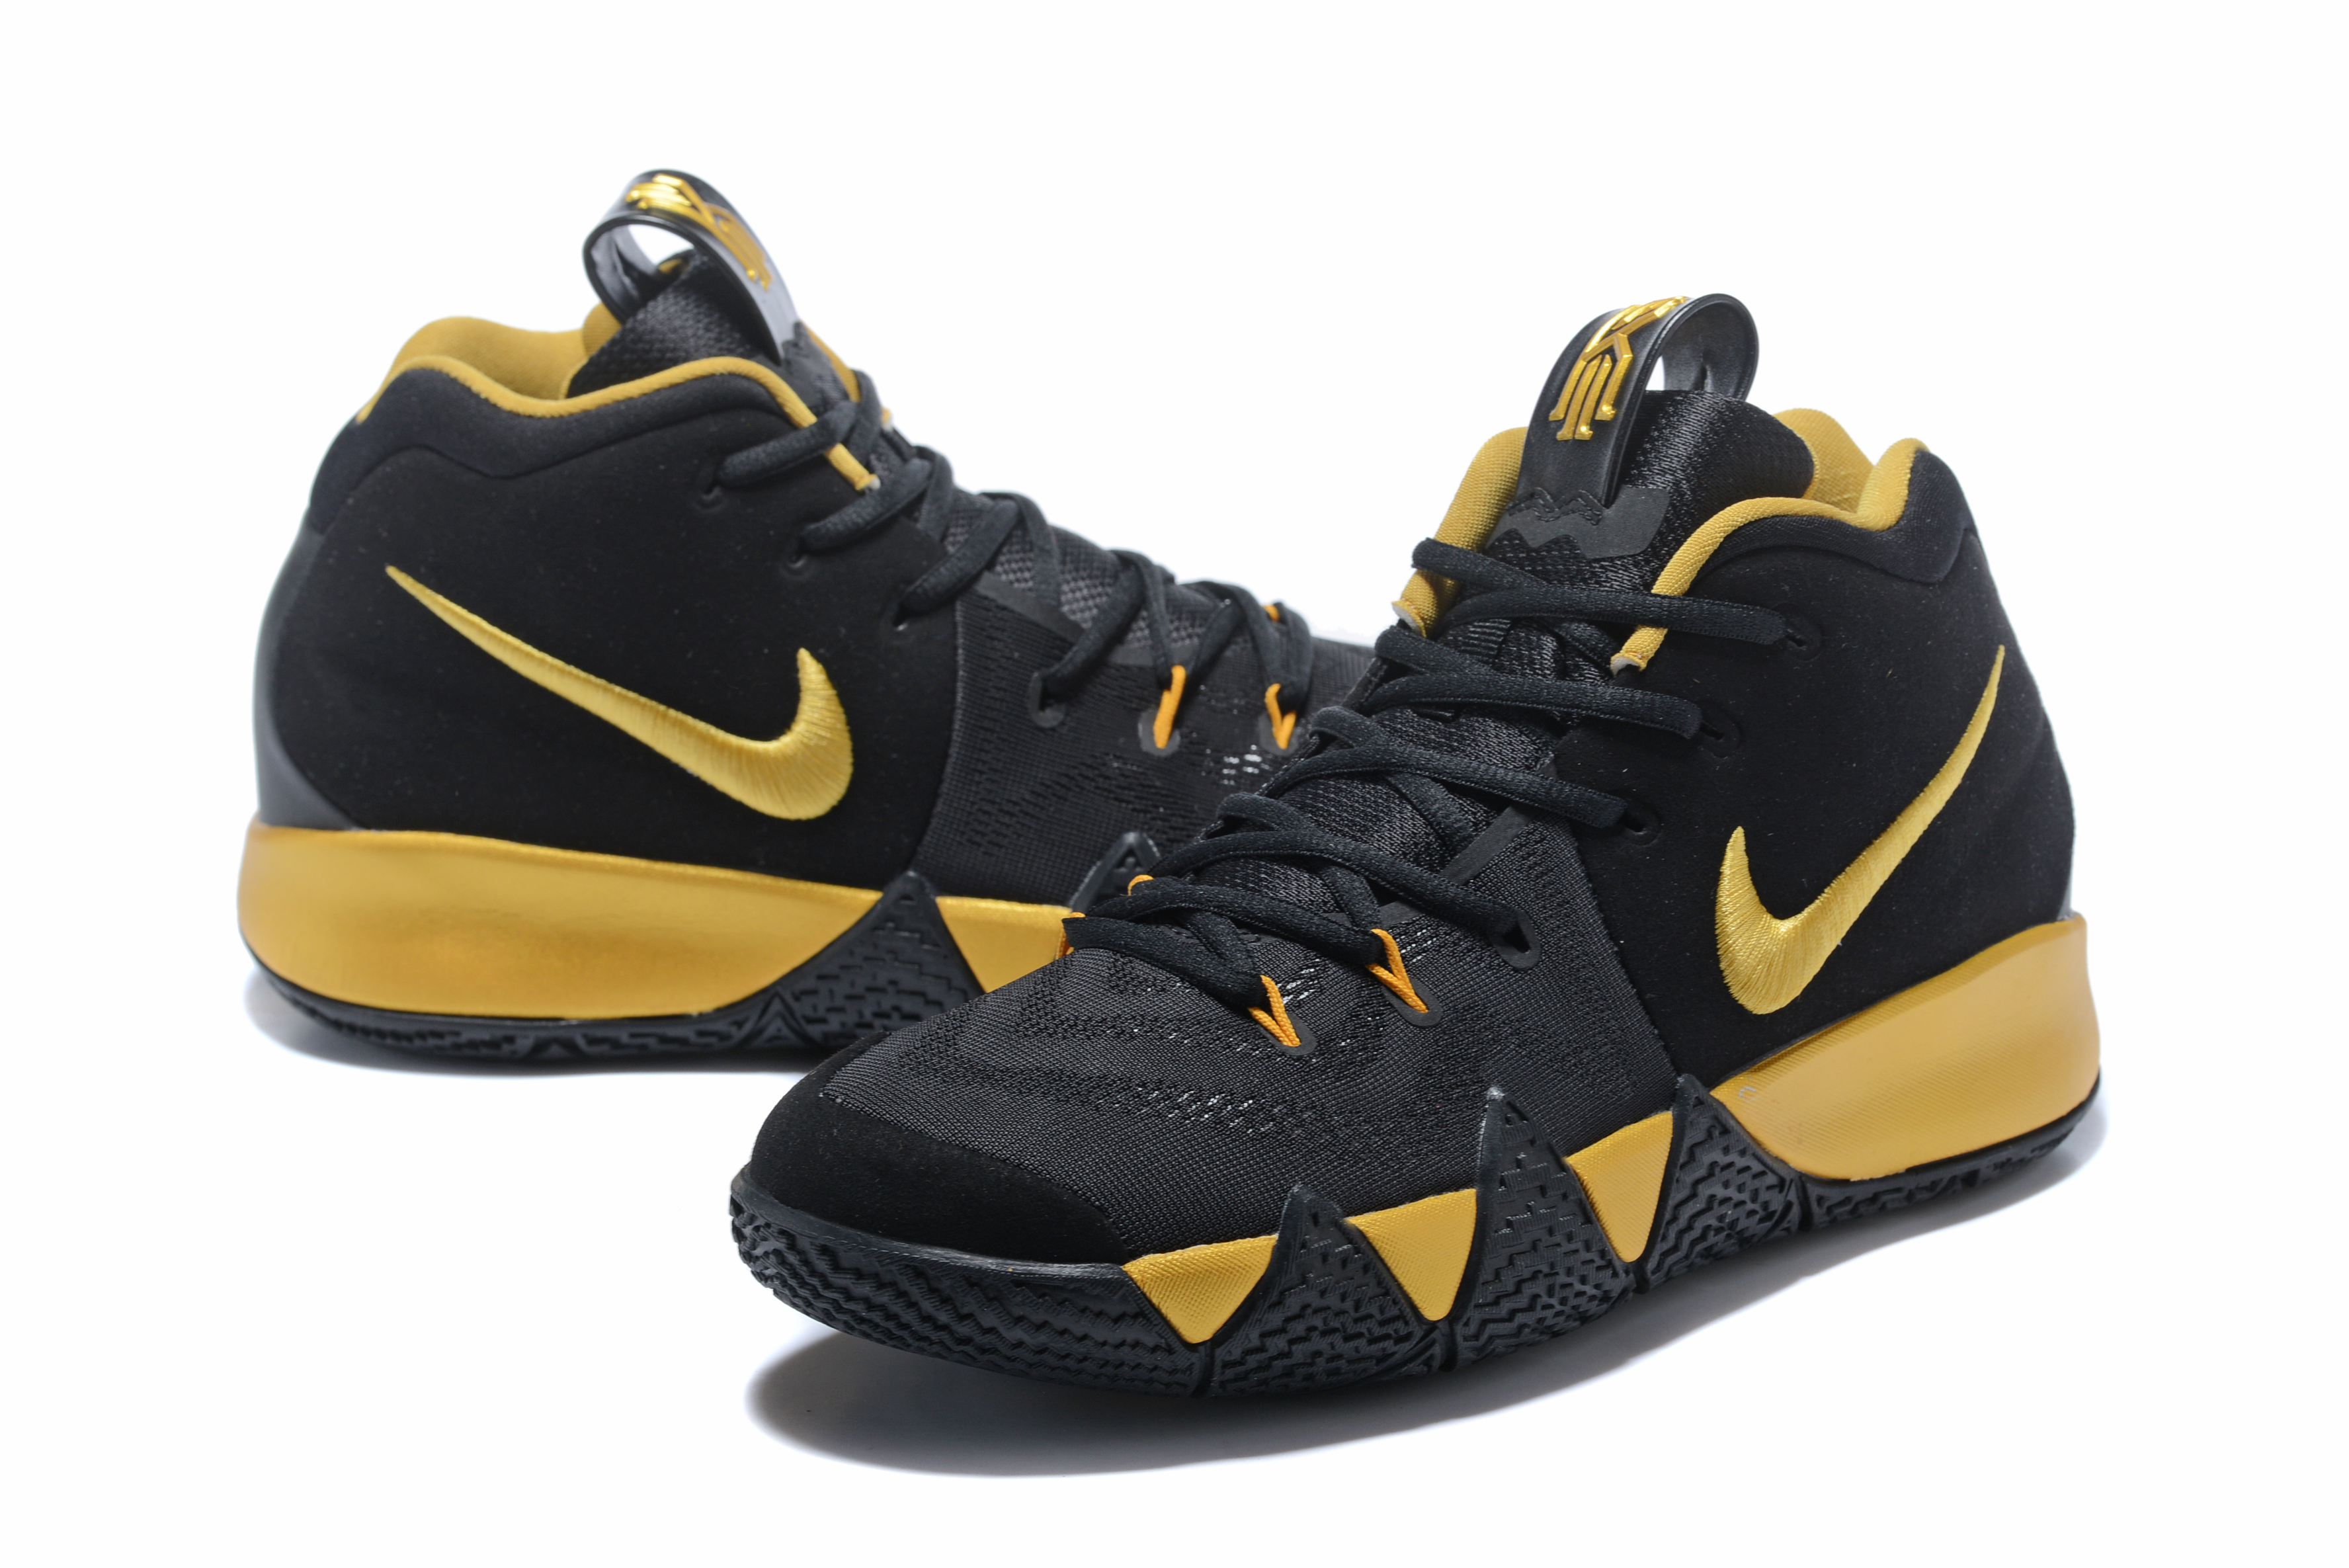 Nike Kyrie Irving 4 Black Gloden Shoes